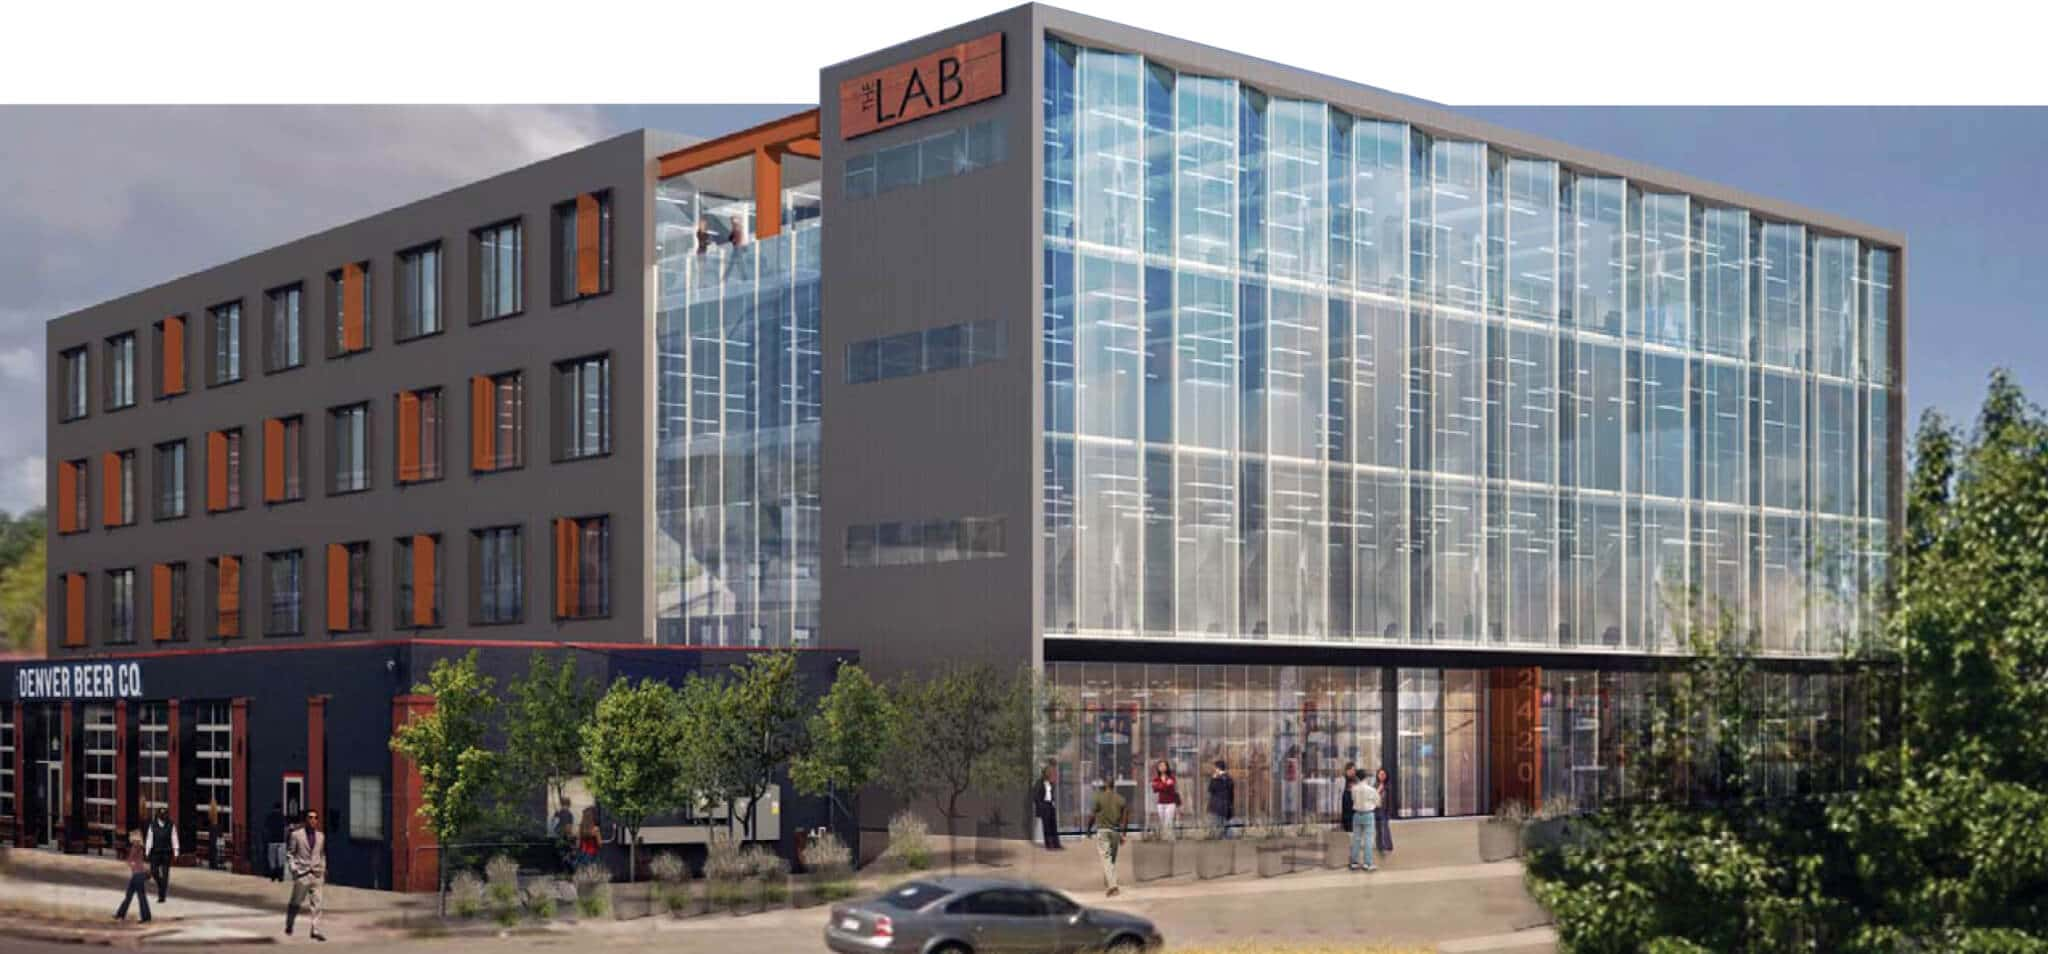 VERTEX, Industrial Property Redevelopment, The Lab, Denver Colorado